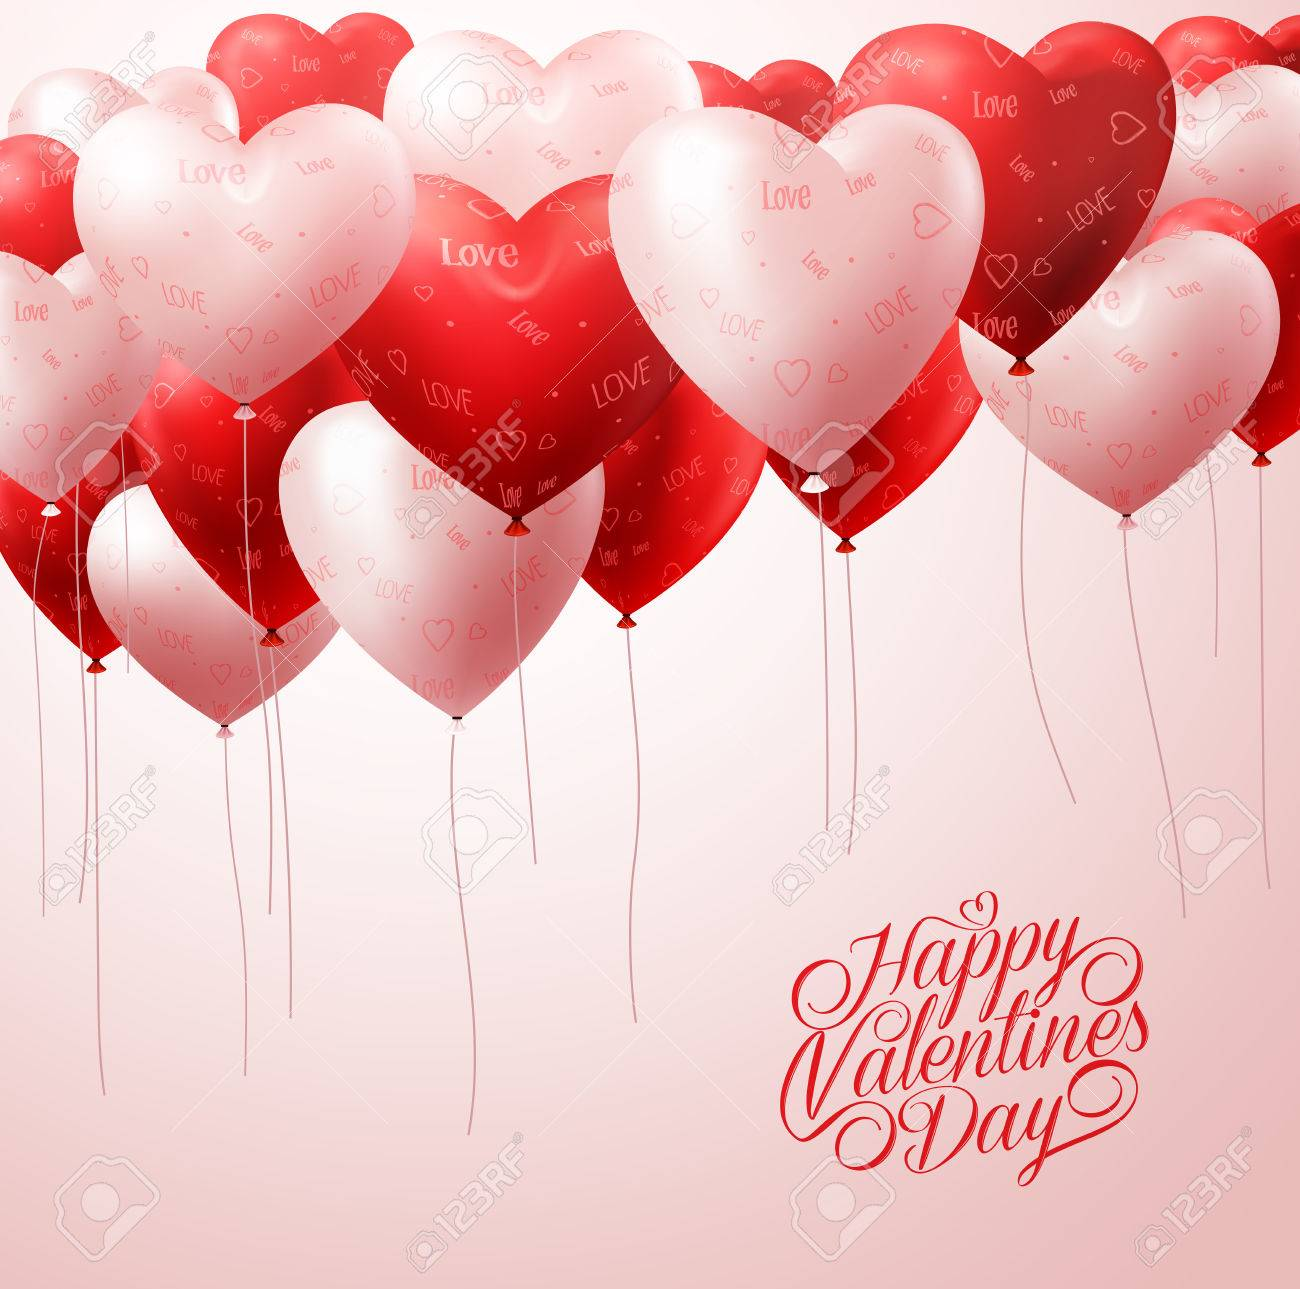 3D Realistic White and Red Heart Balloons Flying with Patterns in White for Valentines Greetings Background. Vector Illustration - 50818488